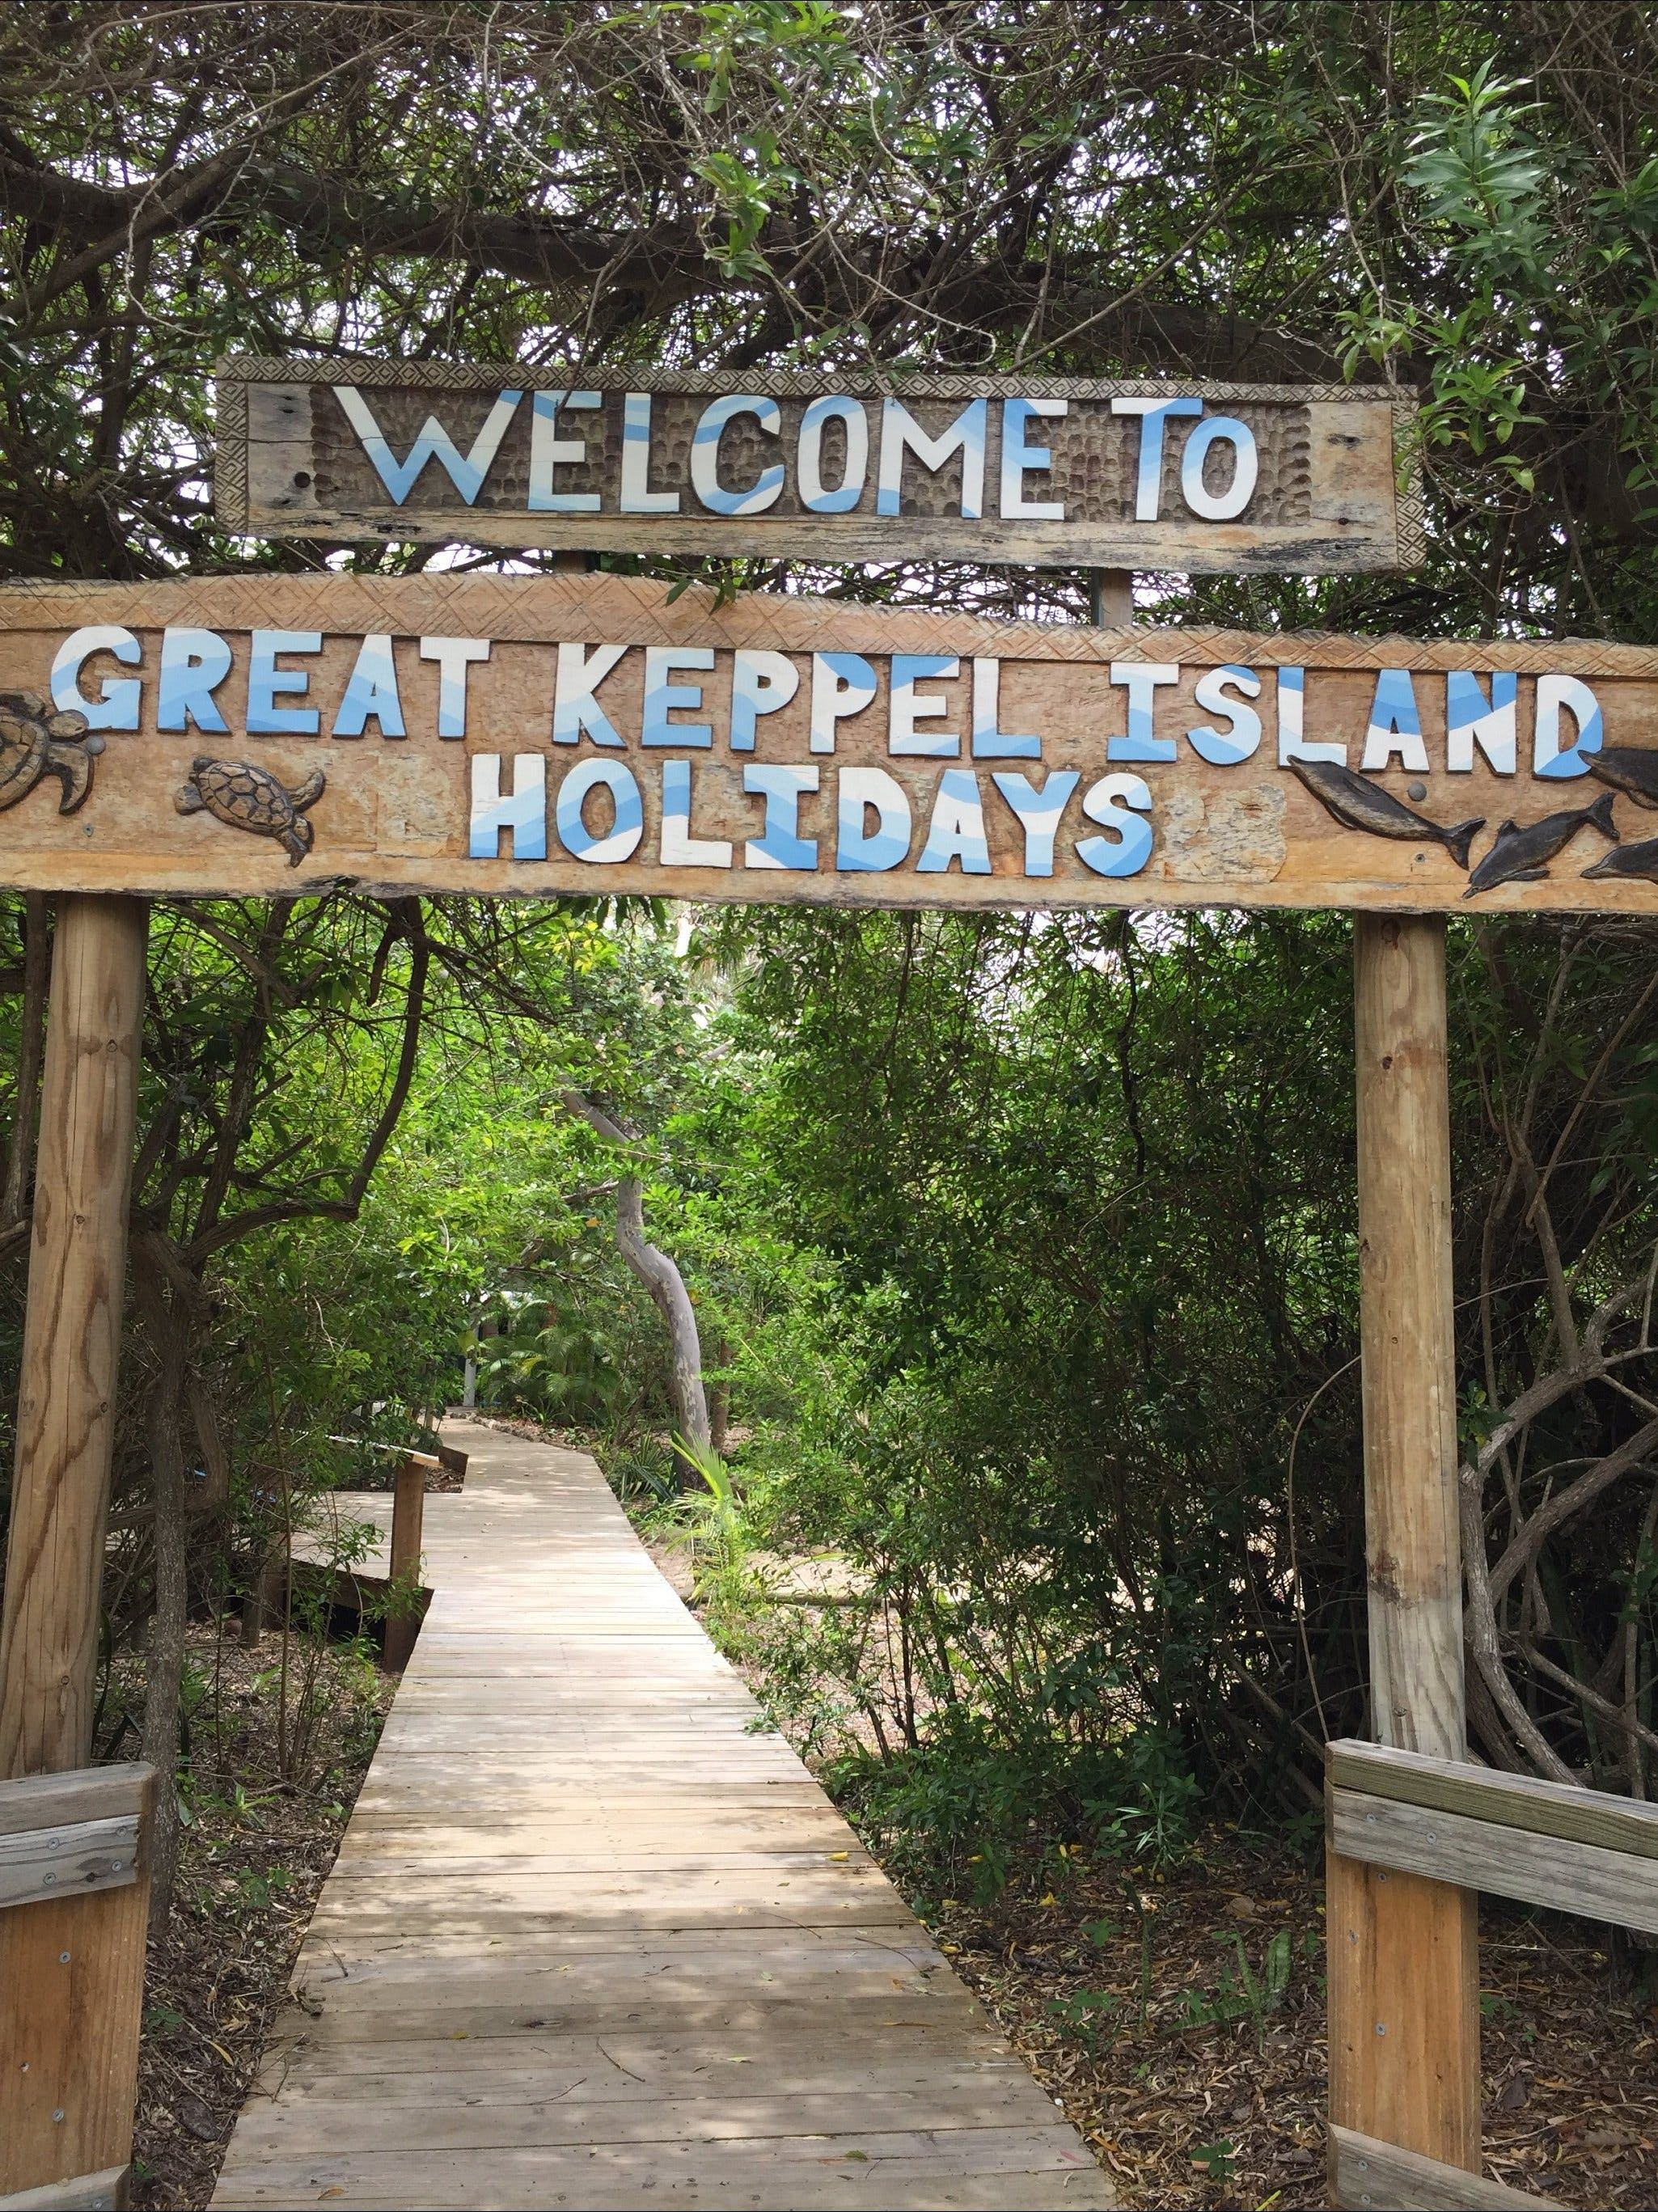 Great Keppel Island Holiday Village - Mackay Tourism